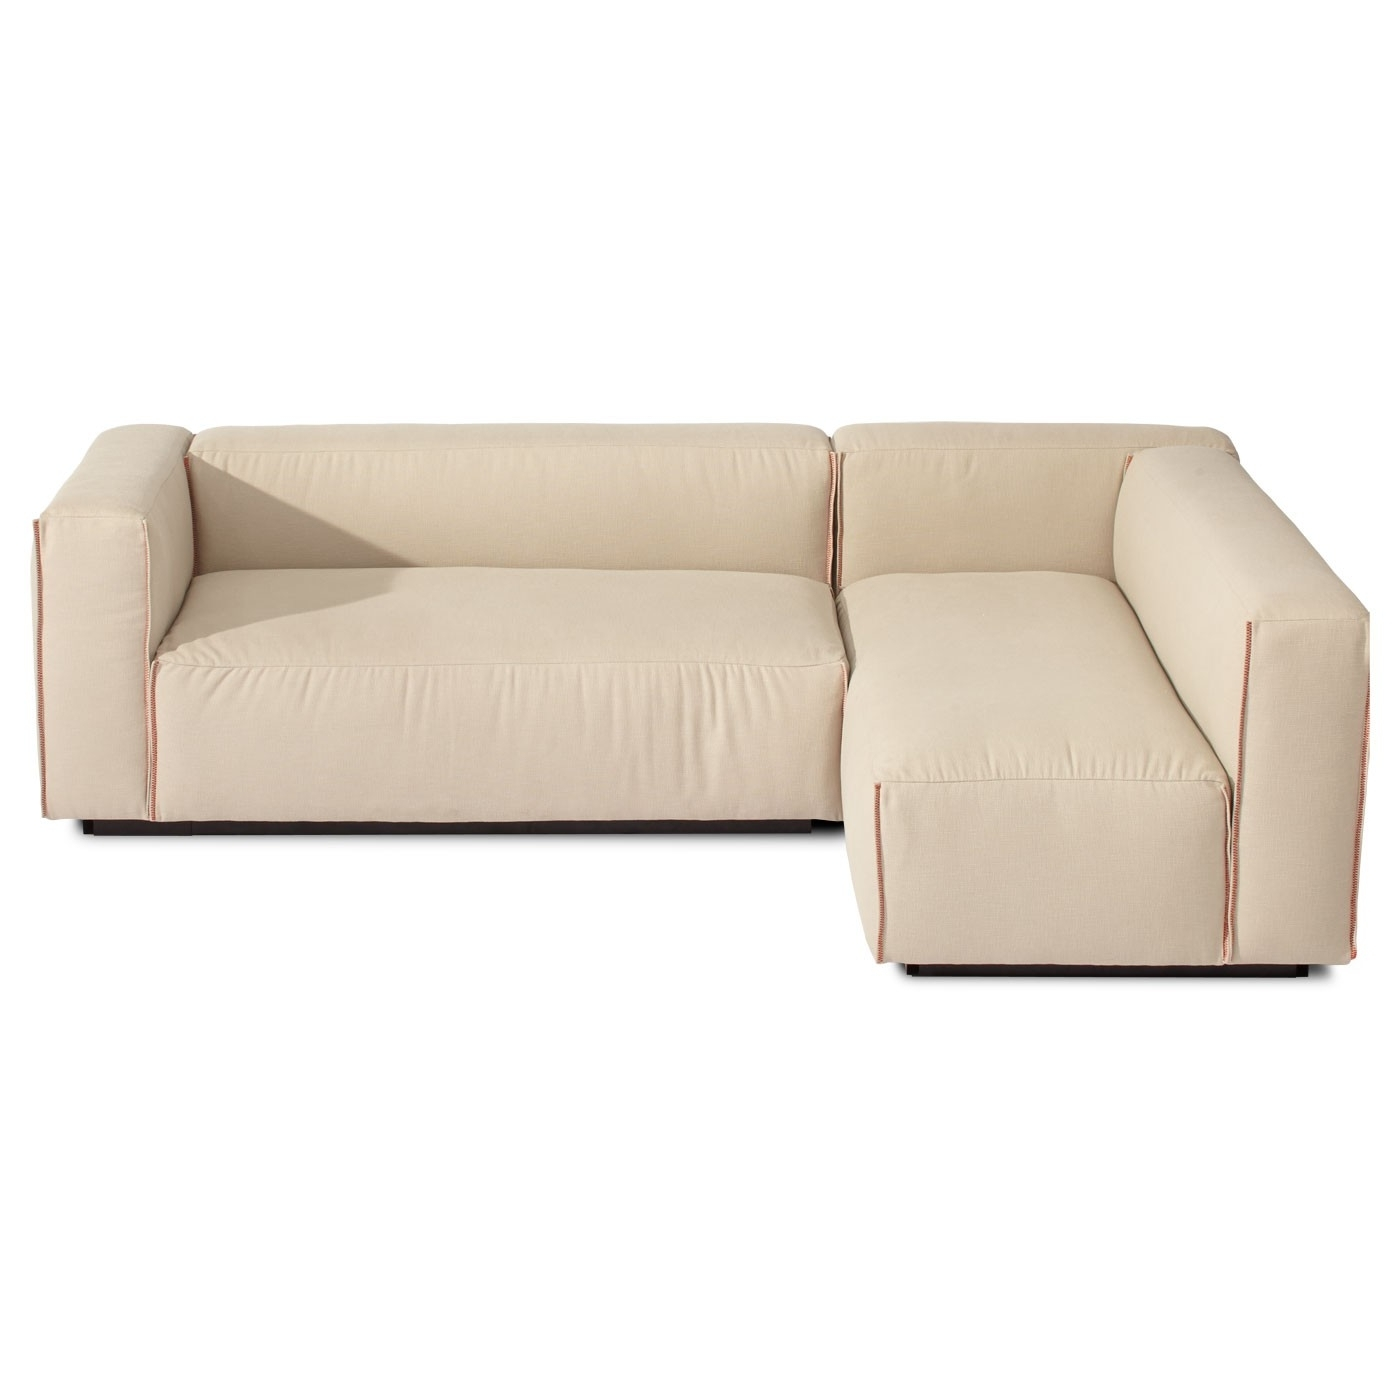 Well Liked Sectional Sofa Design: Elegant Small Modern Sectional Sofa Inside Armless Sectional Sofas (View 4 of 15)